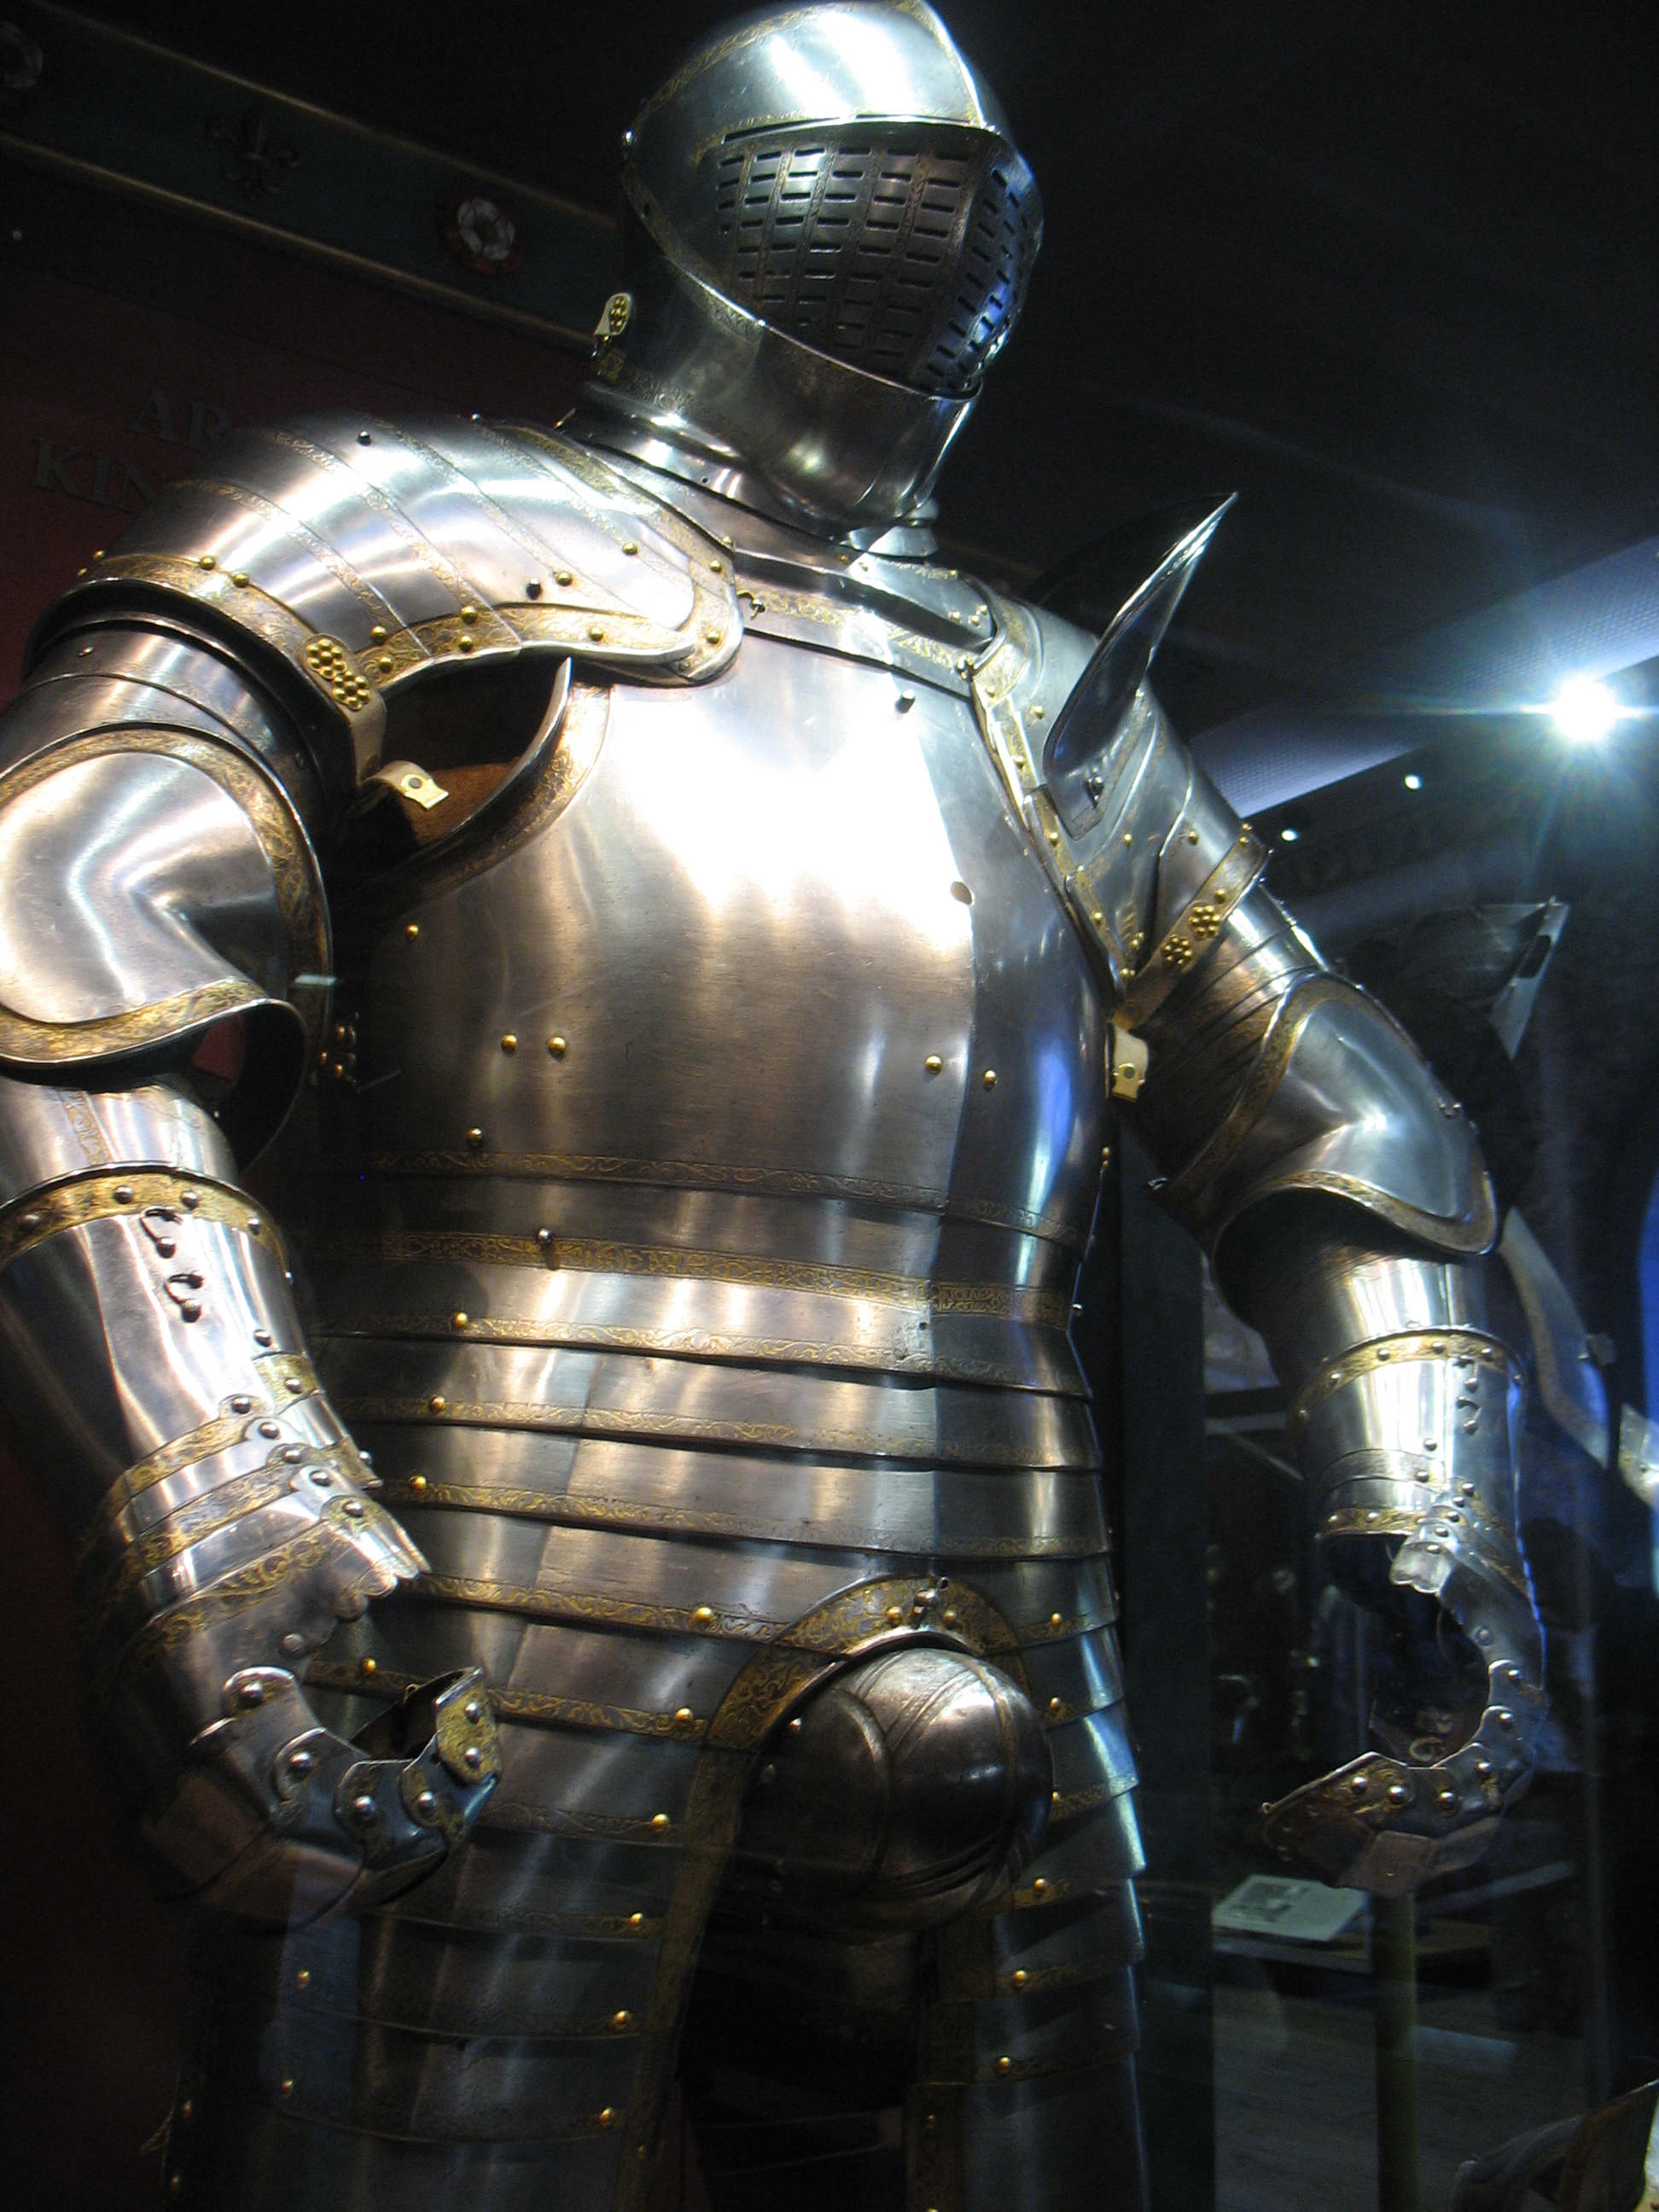 Metal codpiece